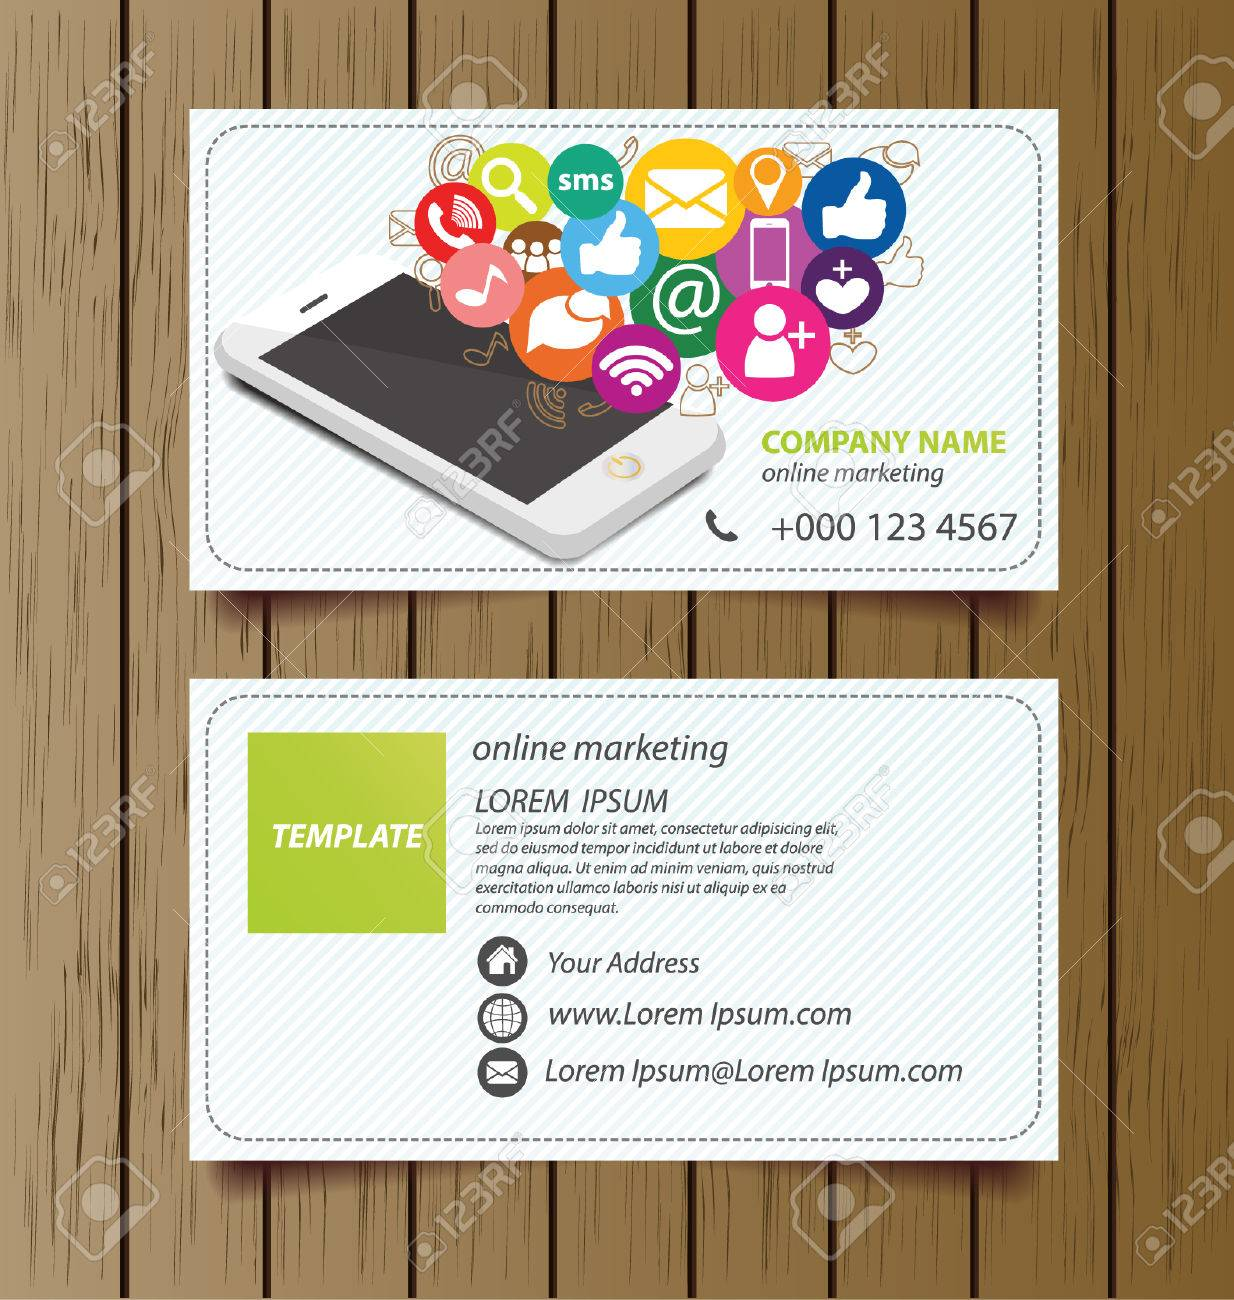 Business card template for online marketing vector royalty free business card template for online marketing vector stock vector 28388474 cheaphphosting Choice Image